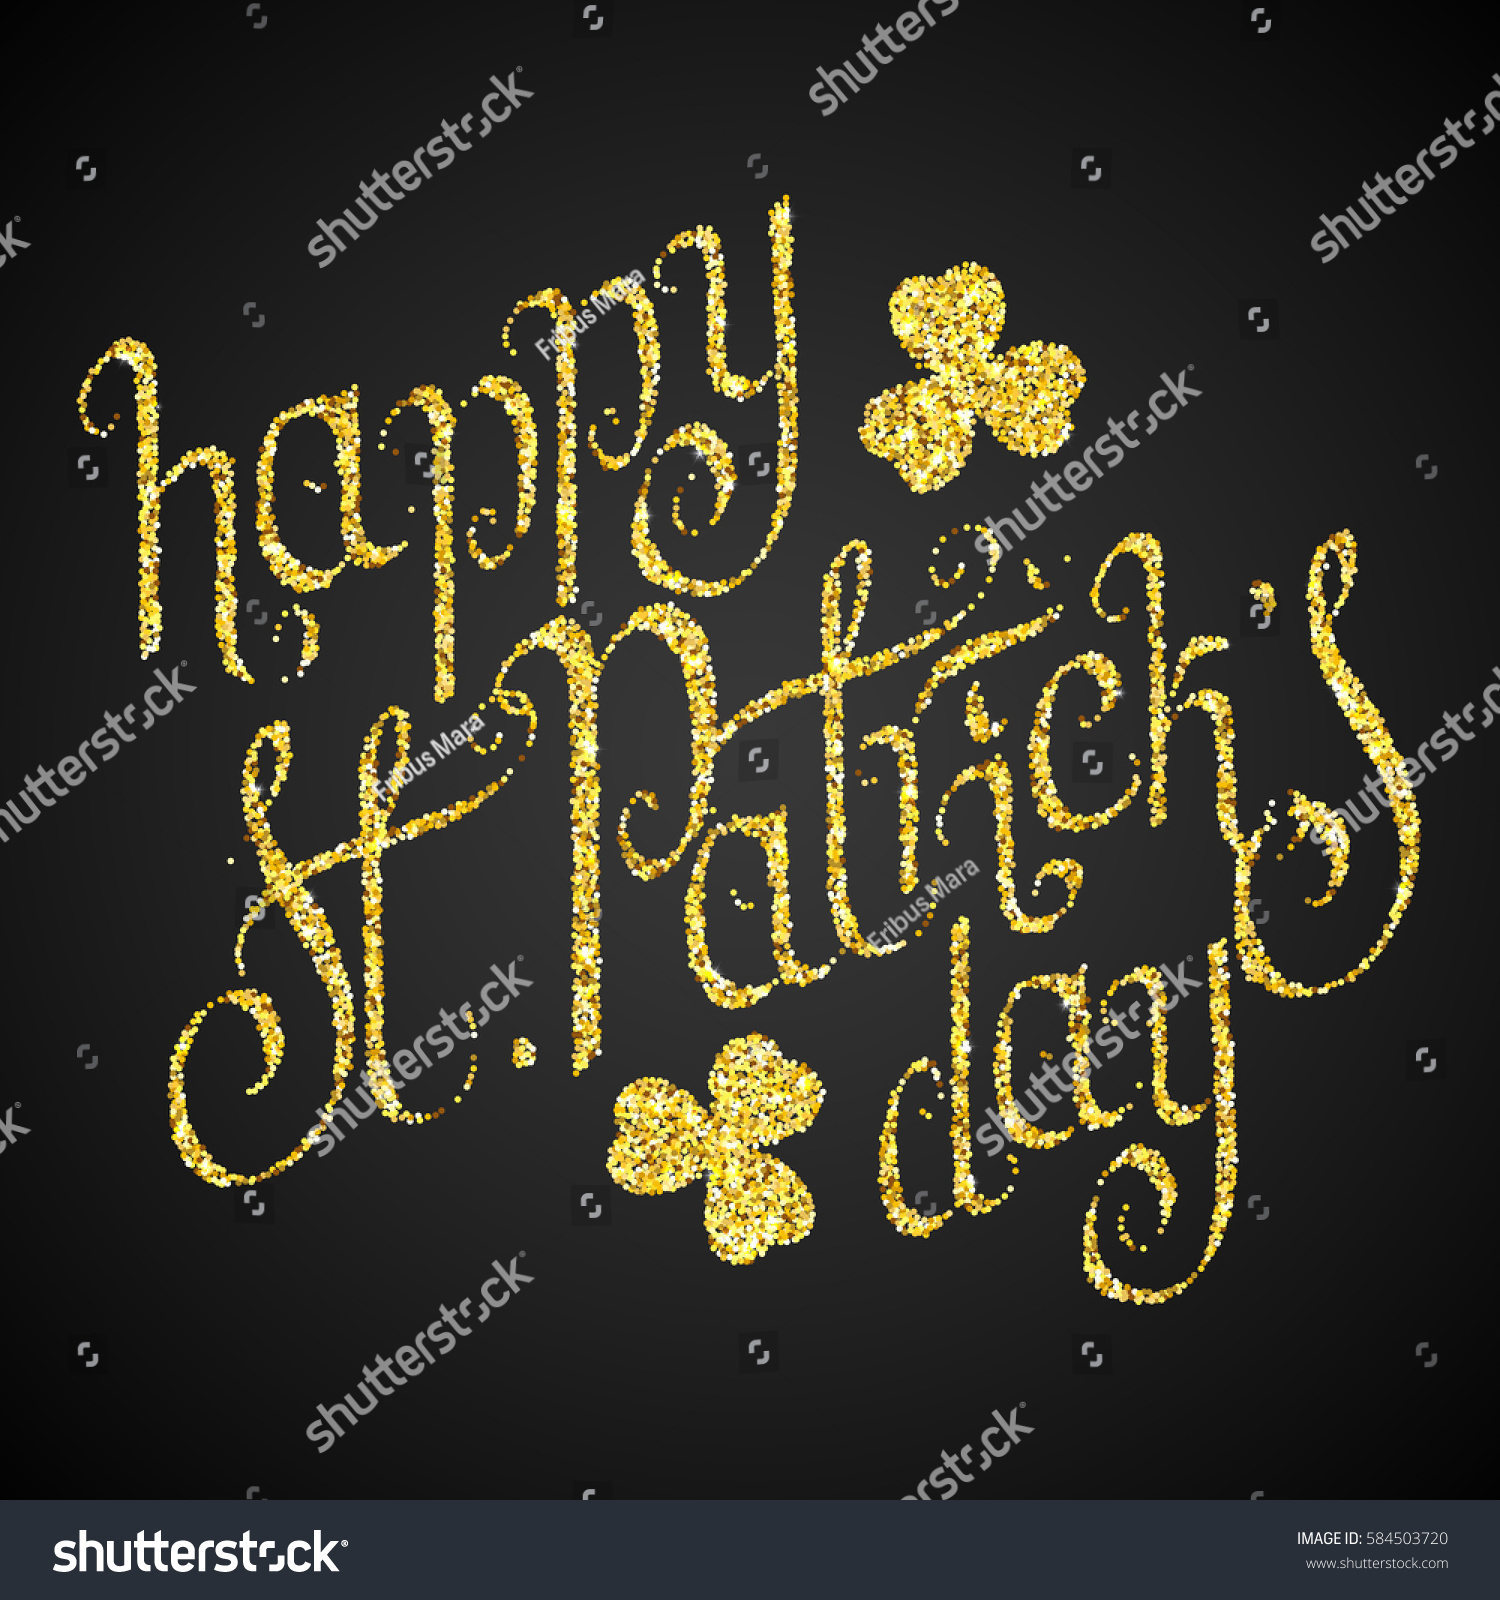 Hand written golden glitter st patricks stock vector 584503720 hand written golden glitter st patricks day greetings over black background irish traditional holiday kristyandbryce Images